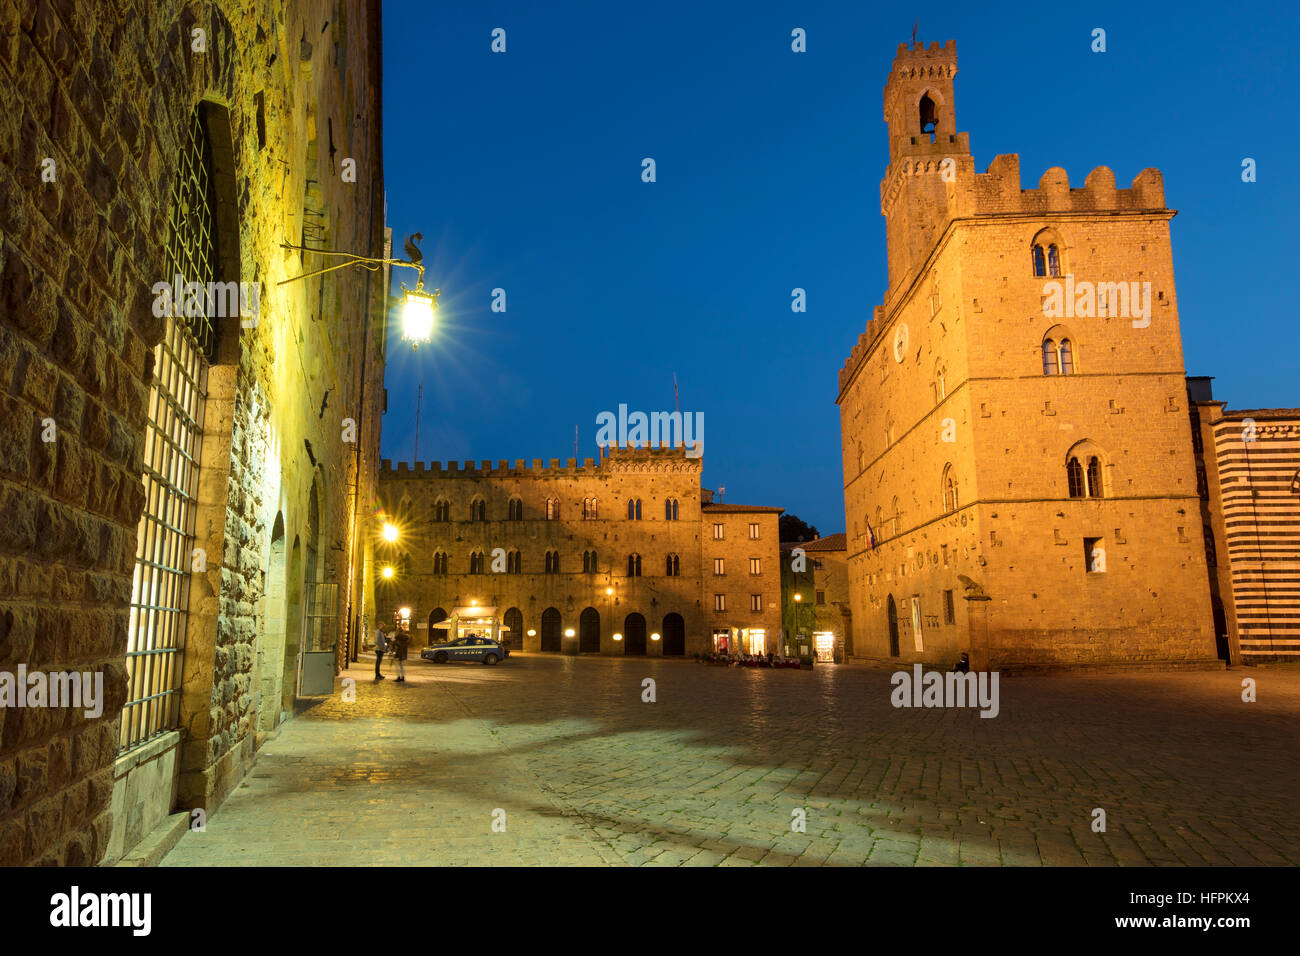 Twilight over Palazzo dei Priori and the medieval town of Volterra, Tuscany, Italy - Stock Image